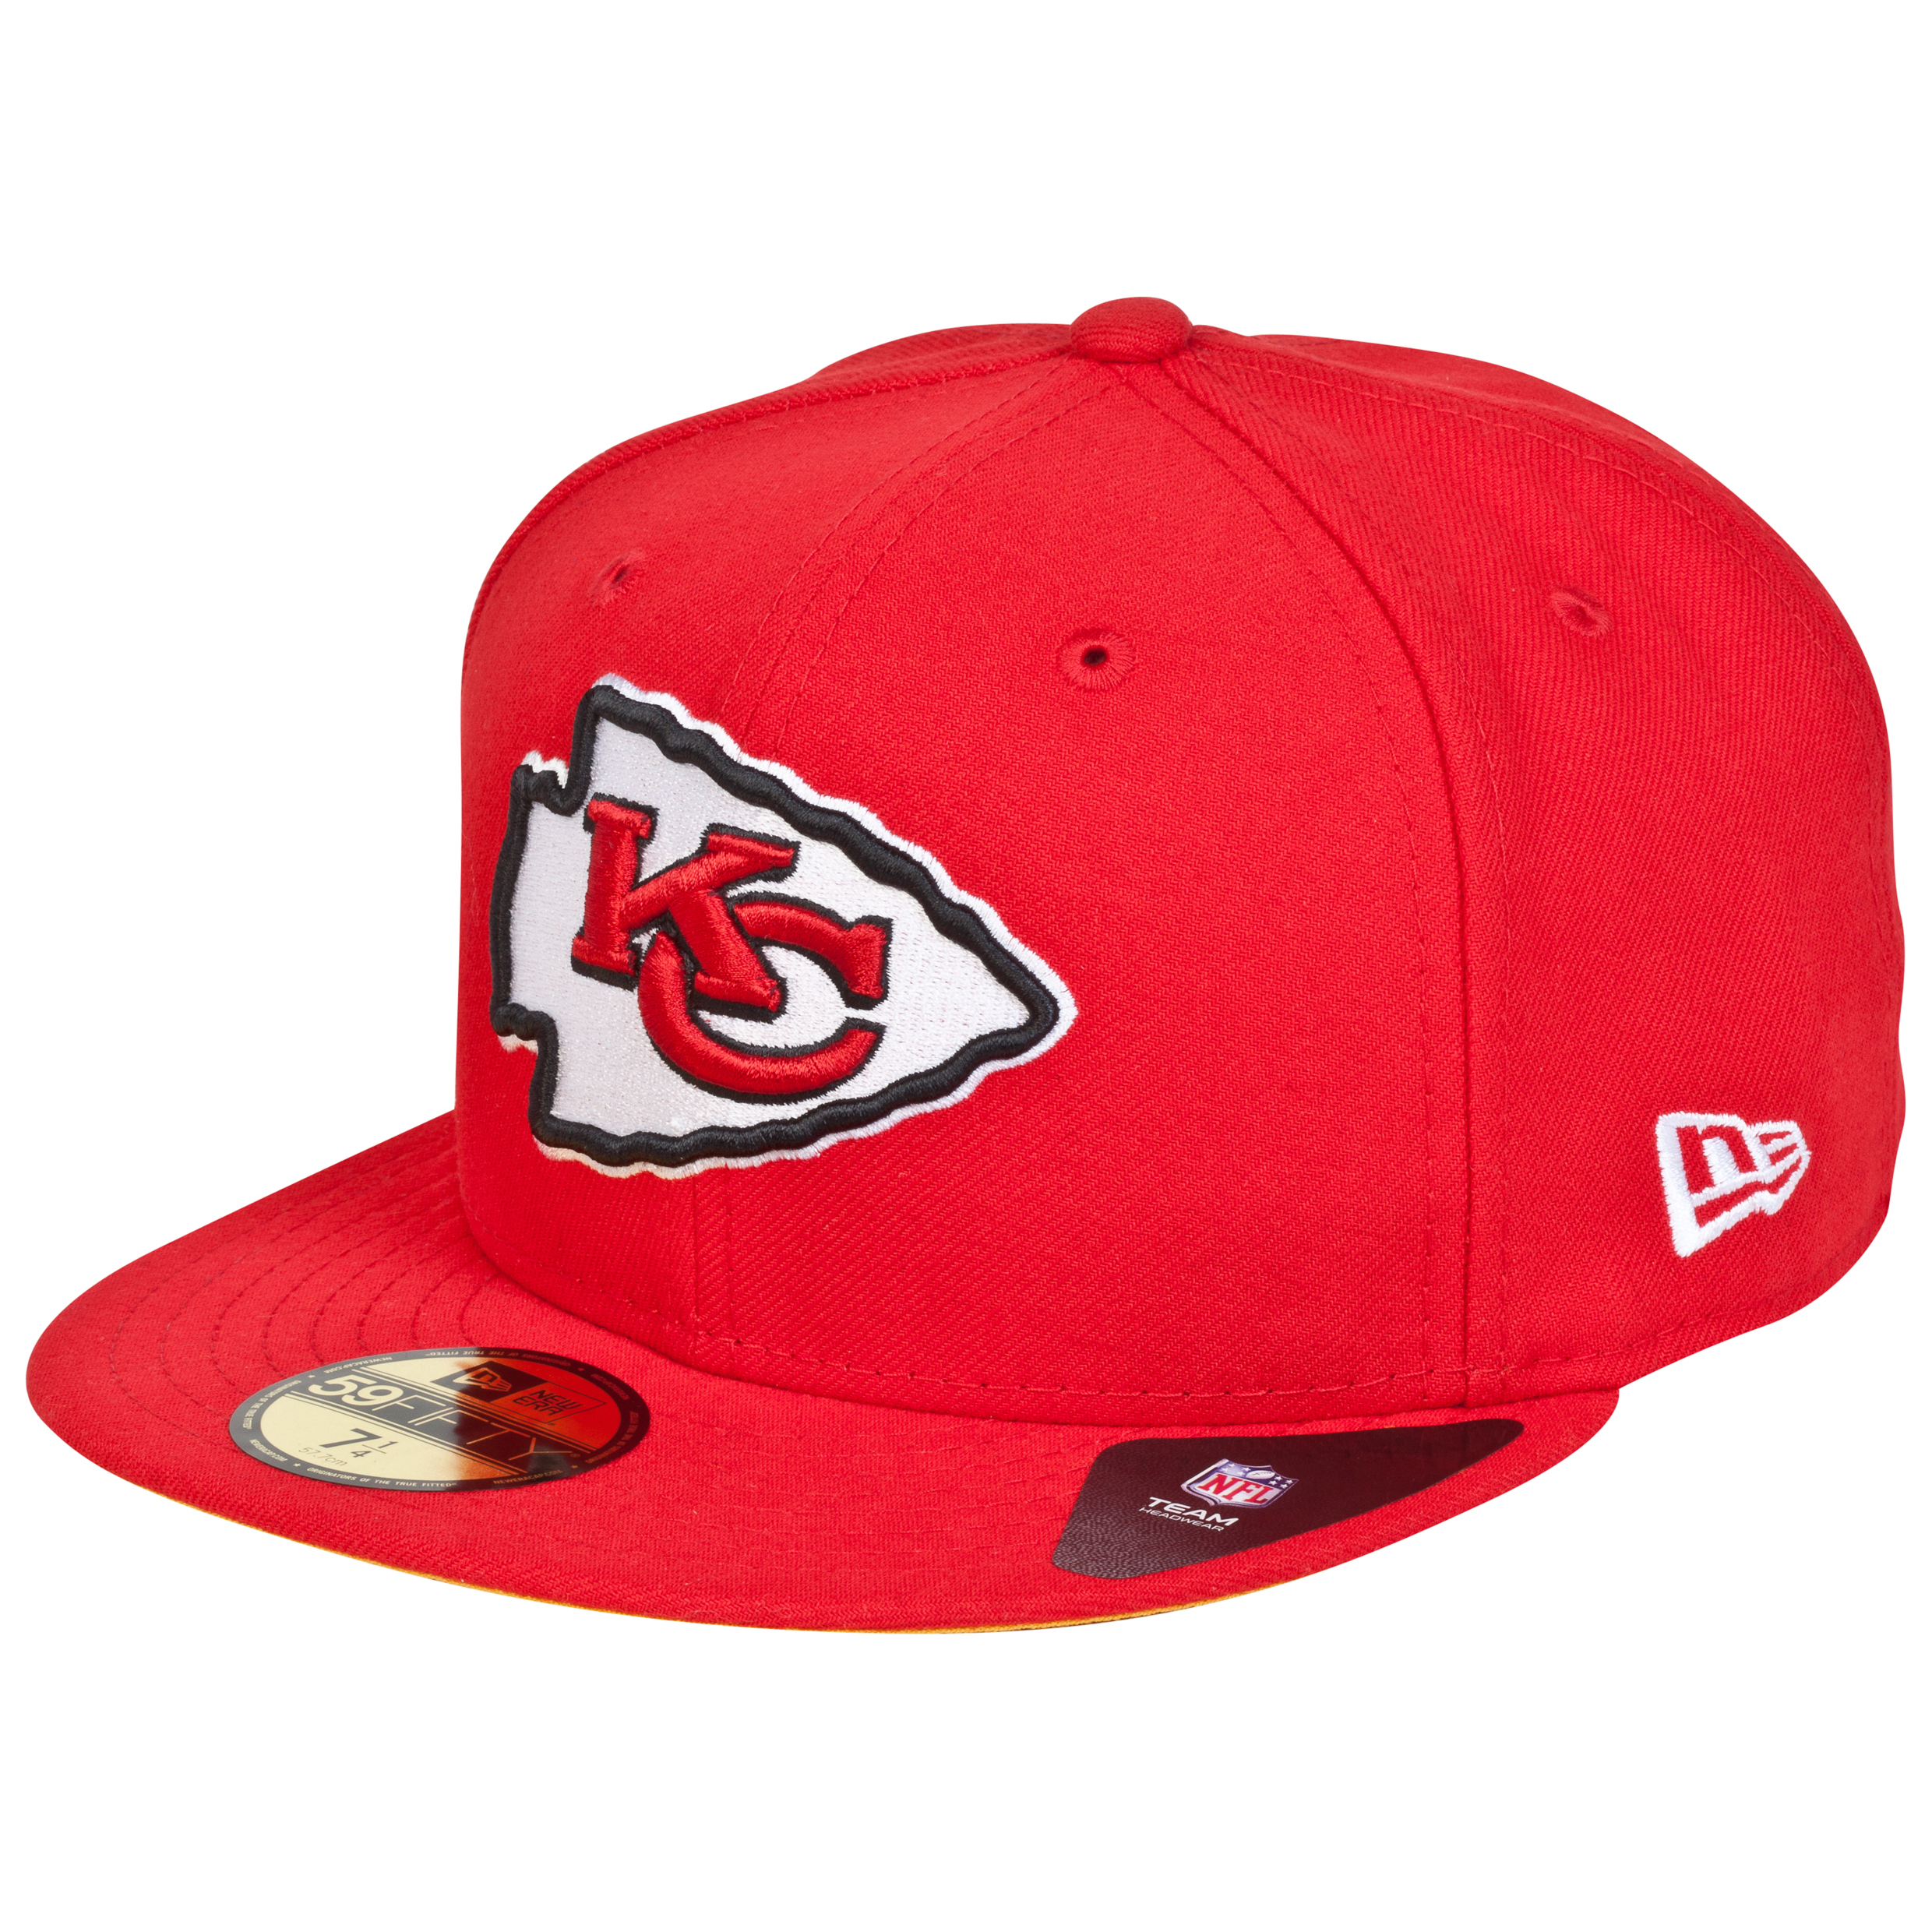 Kansas City Chiefs ew Era 59FIFTY SB Side Patch Super Bowl IV Fitted Cap